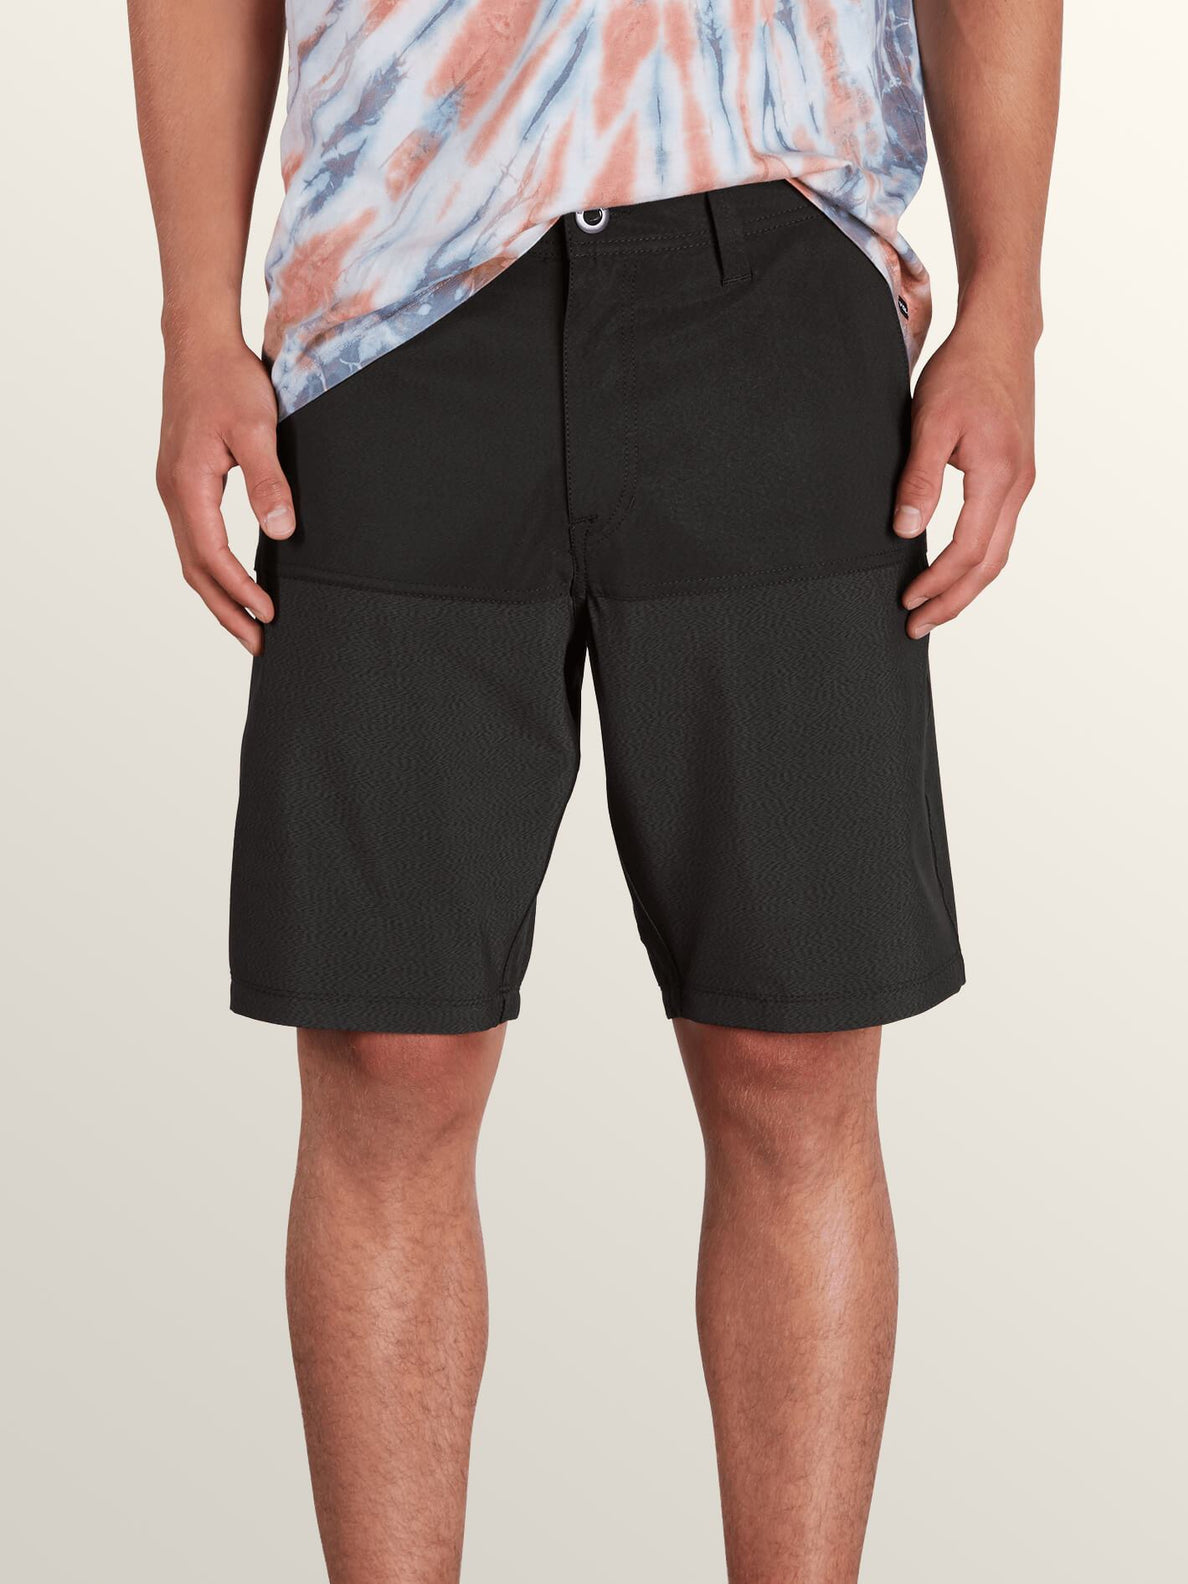 Surf 'N Turf Hybrid Block Hybrid Shorts In Black, Front View